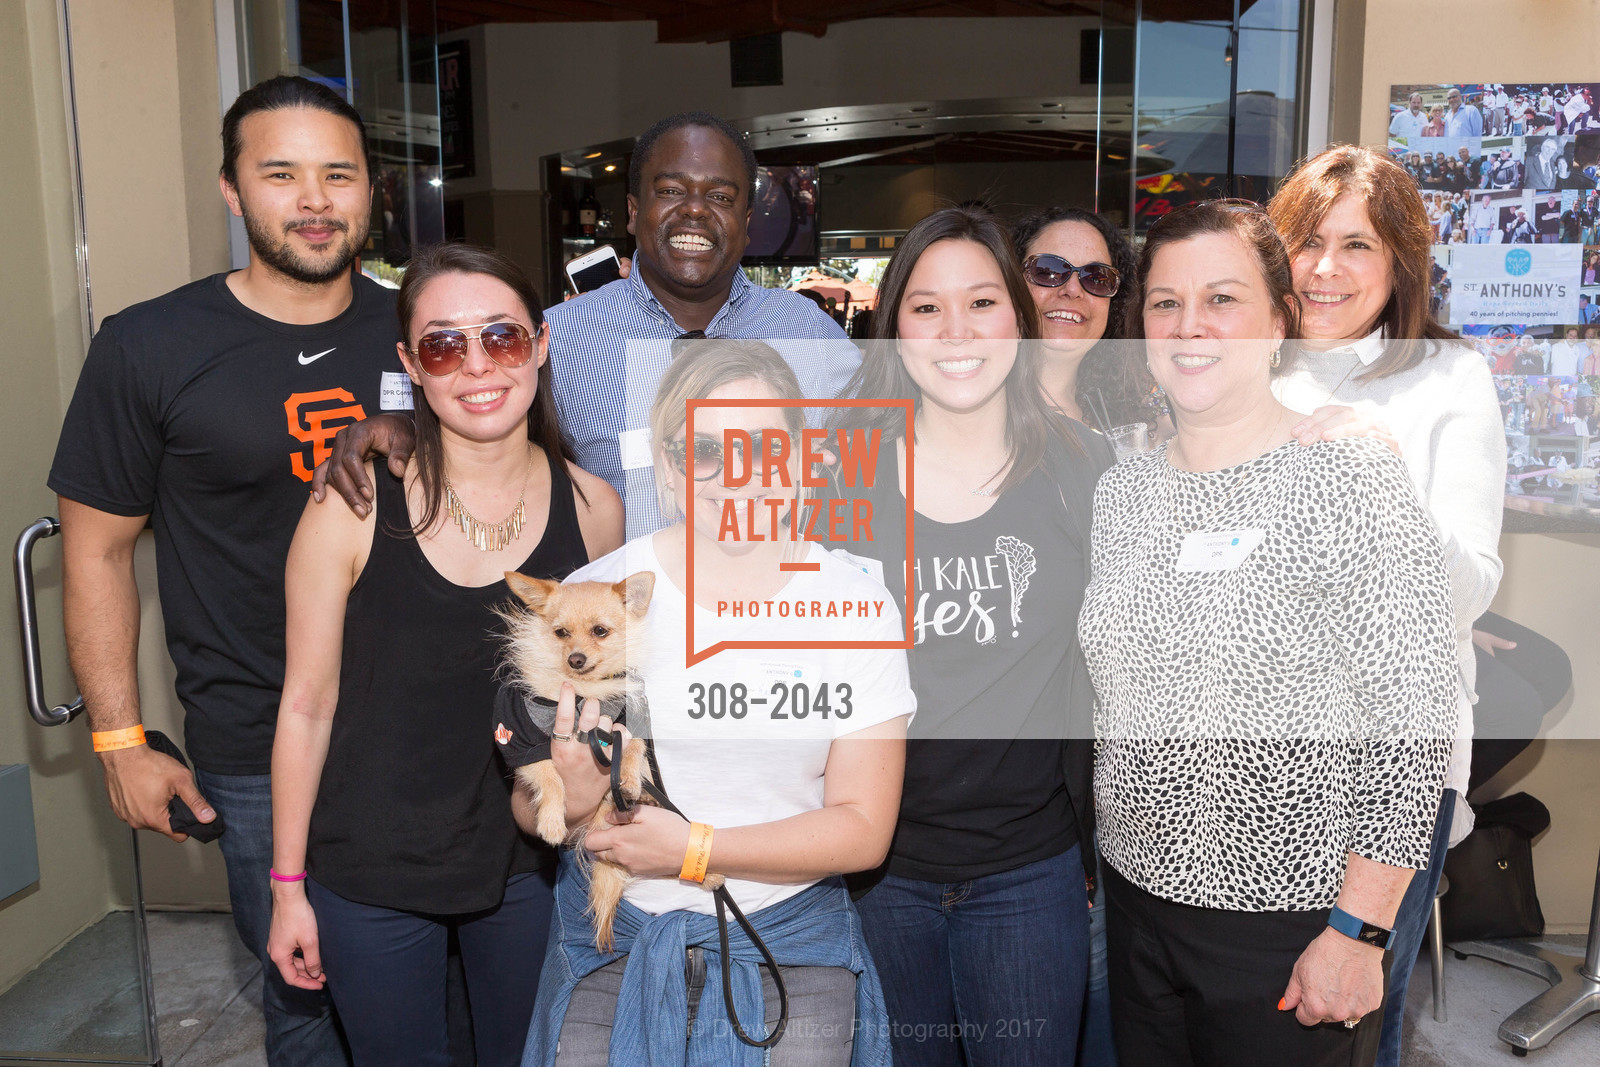 Chris Lejano, Megan Cane, Truman Burke, Rachel Whidlack, Esther Lam, Patricia Palomares, Christina Hayman, Caroline Johnson, St. Anthony's 40th Annual Penny Pitch 2017, Momo's. 760 2nd St.  San Francisco , California 94107, April 21st, 2017